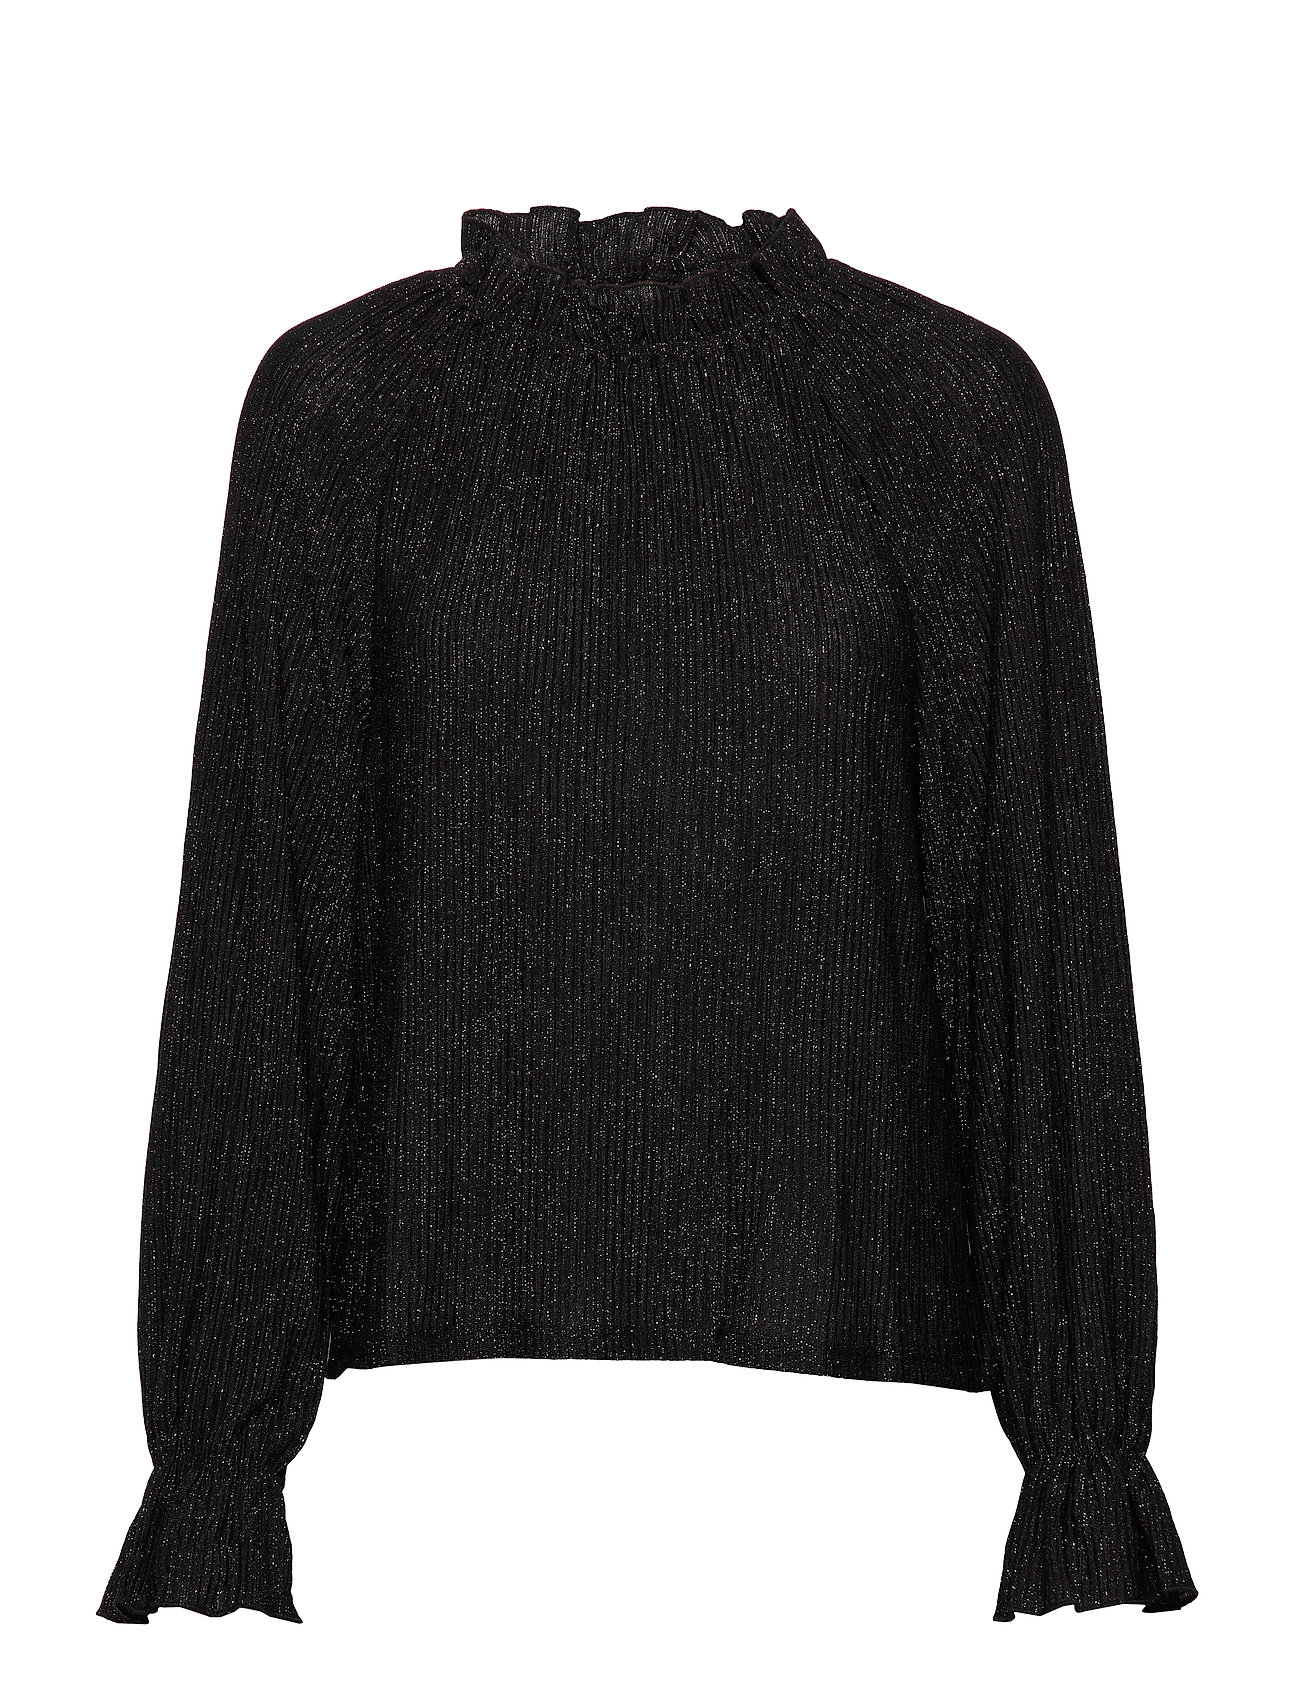 Vila VIWOWA L/S TOP - BLACK